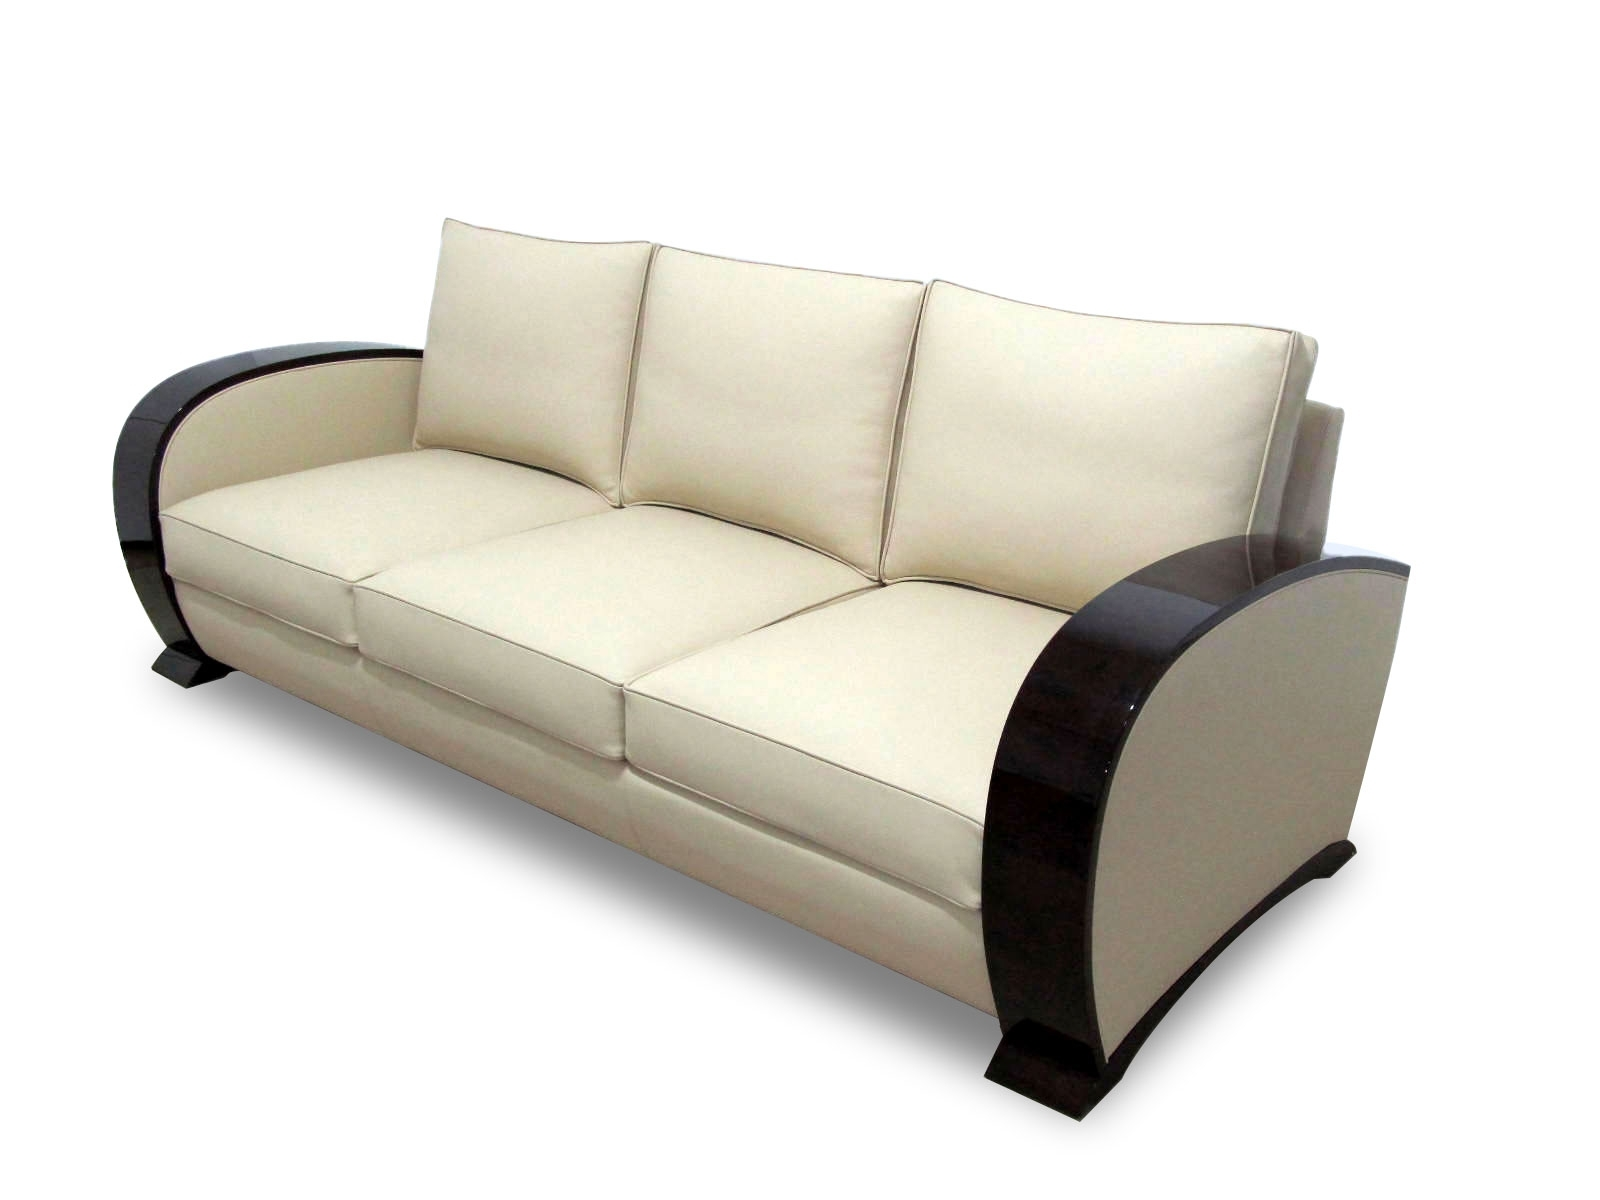 Art Deco Furniture – Hifigeny Custom Furniture With Art Deco Sofas (View 4 of 10)